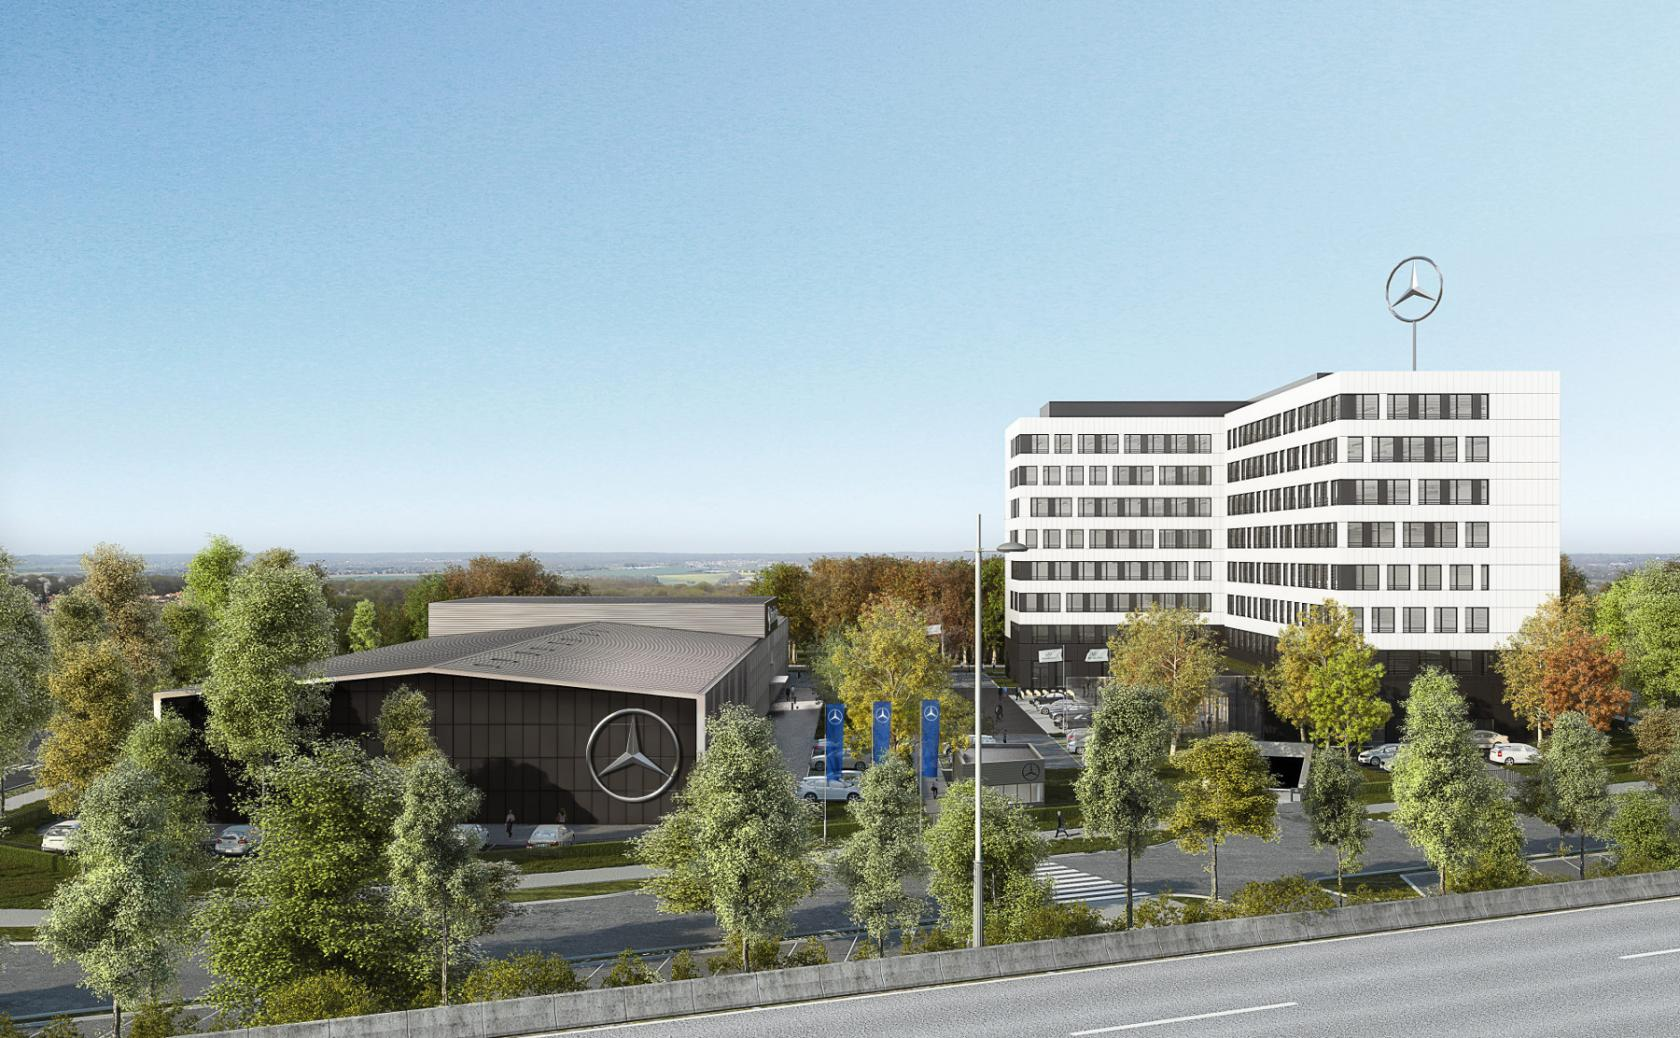 Site m dia mercedes benz france as rss feed le star for Piscine montigny le bretonneux